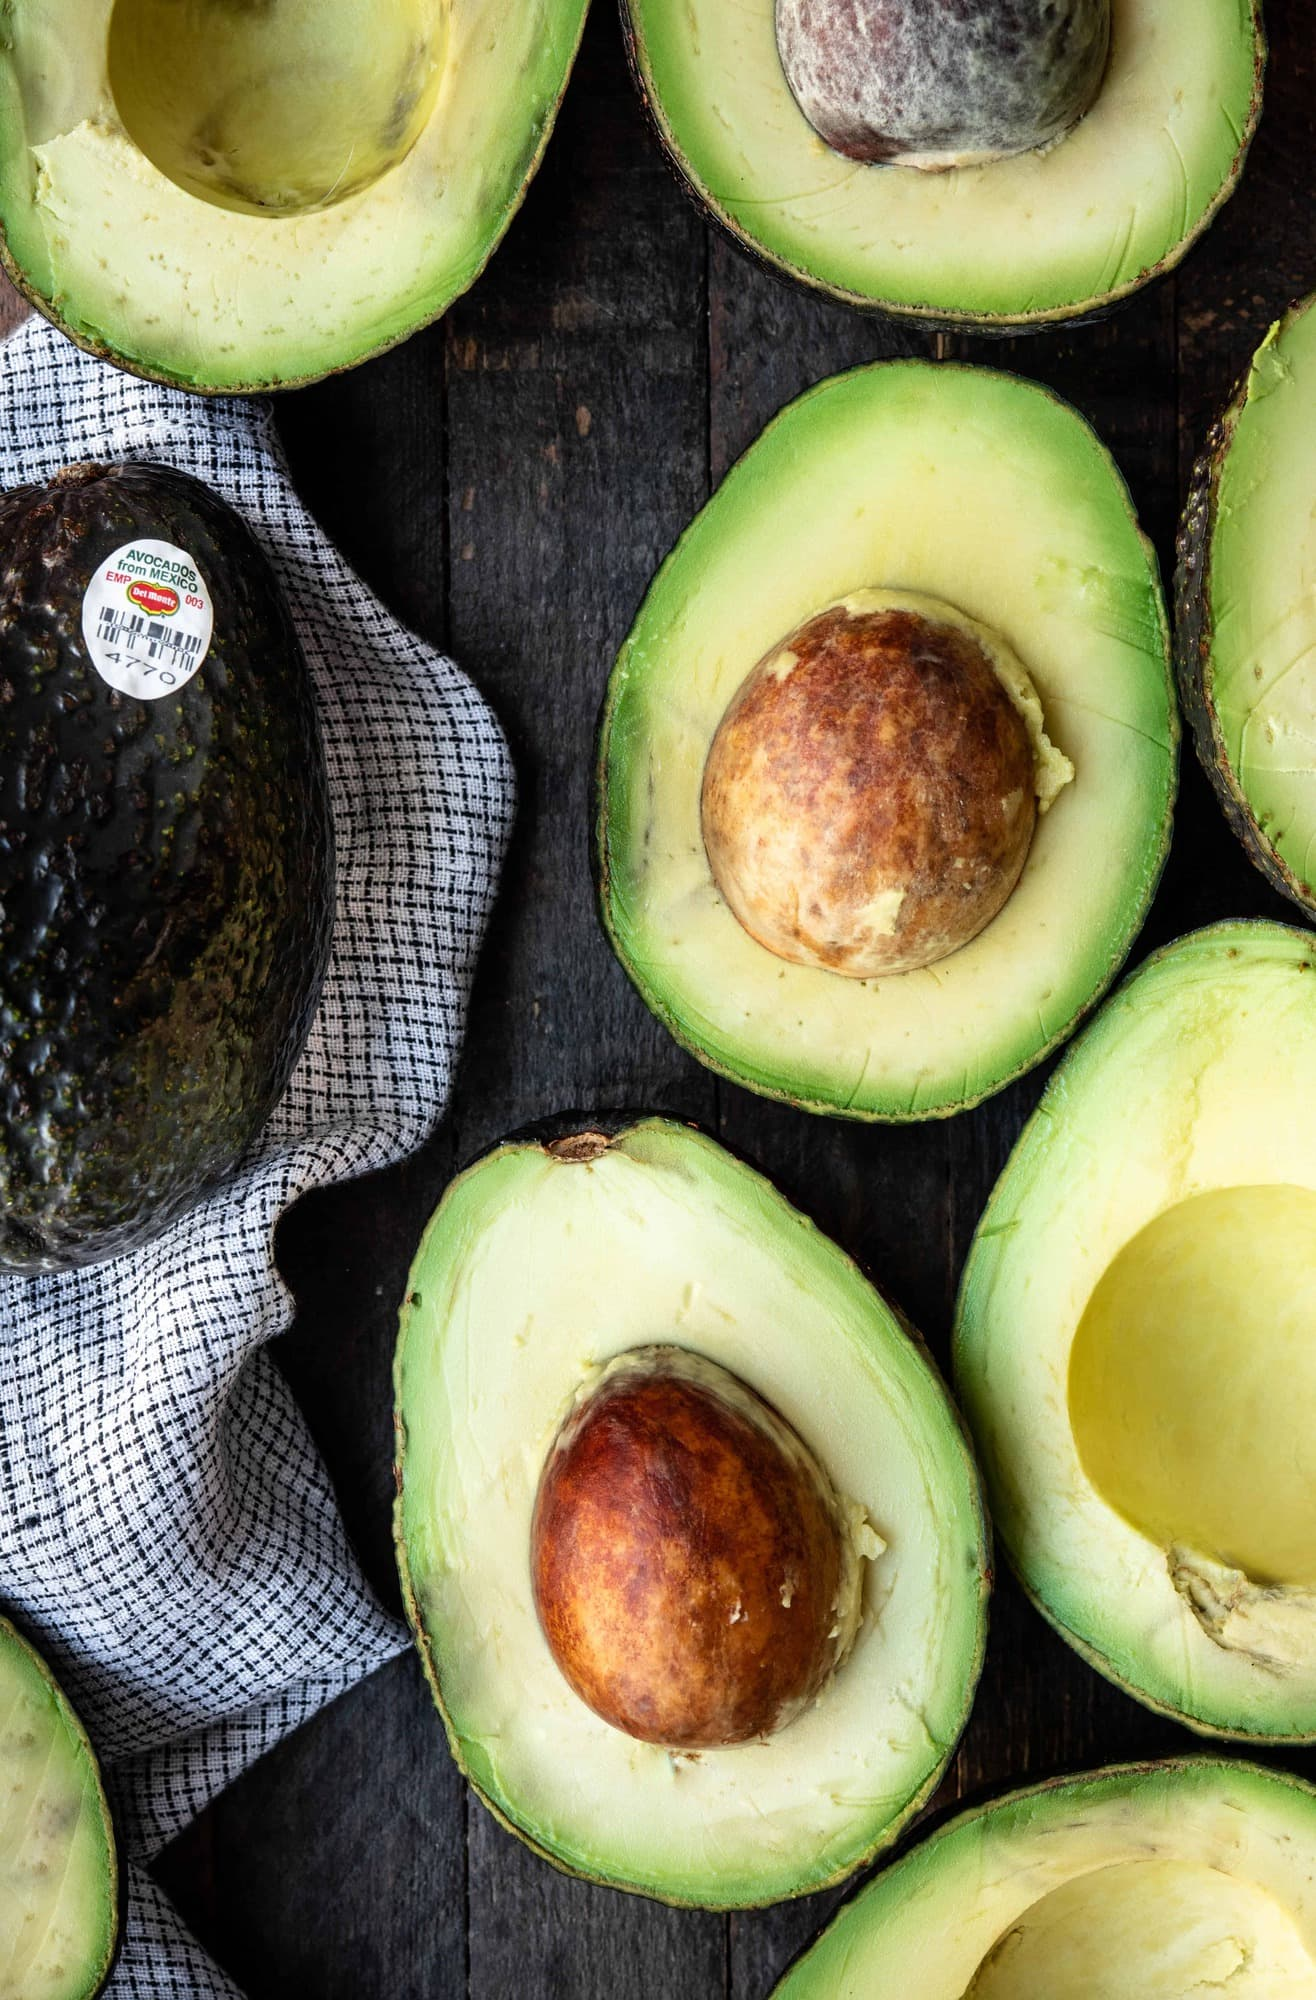 Overhead view of multiple avocados cut in half on a wood background